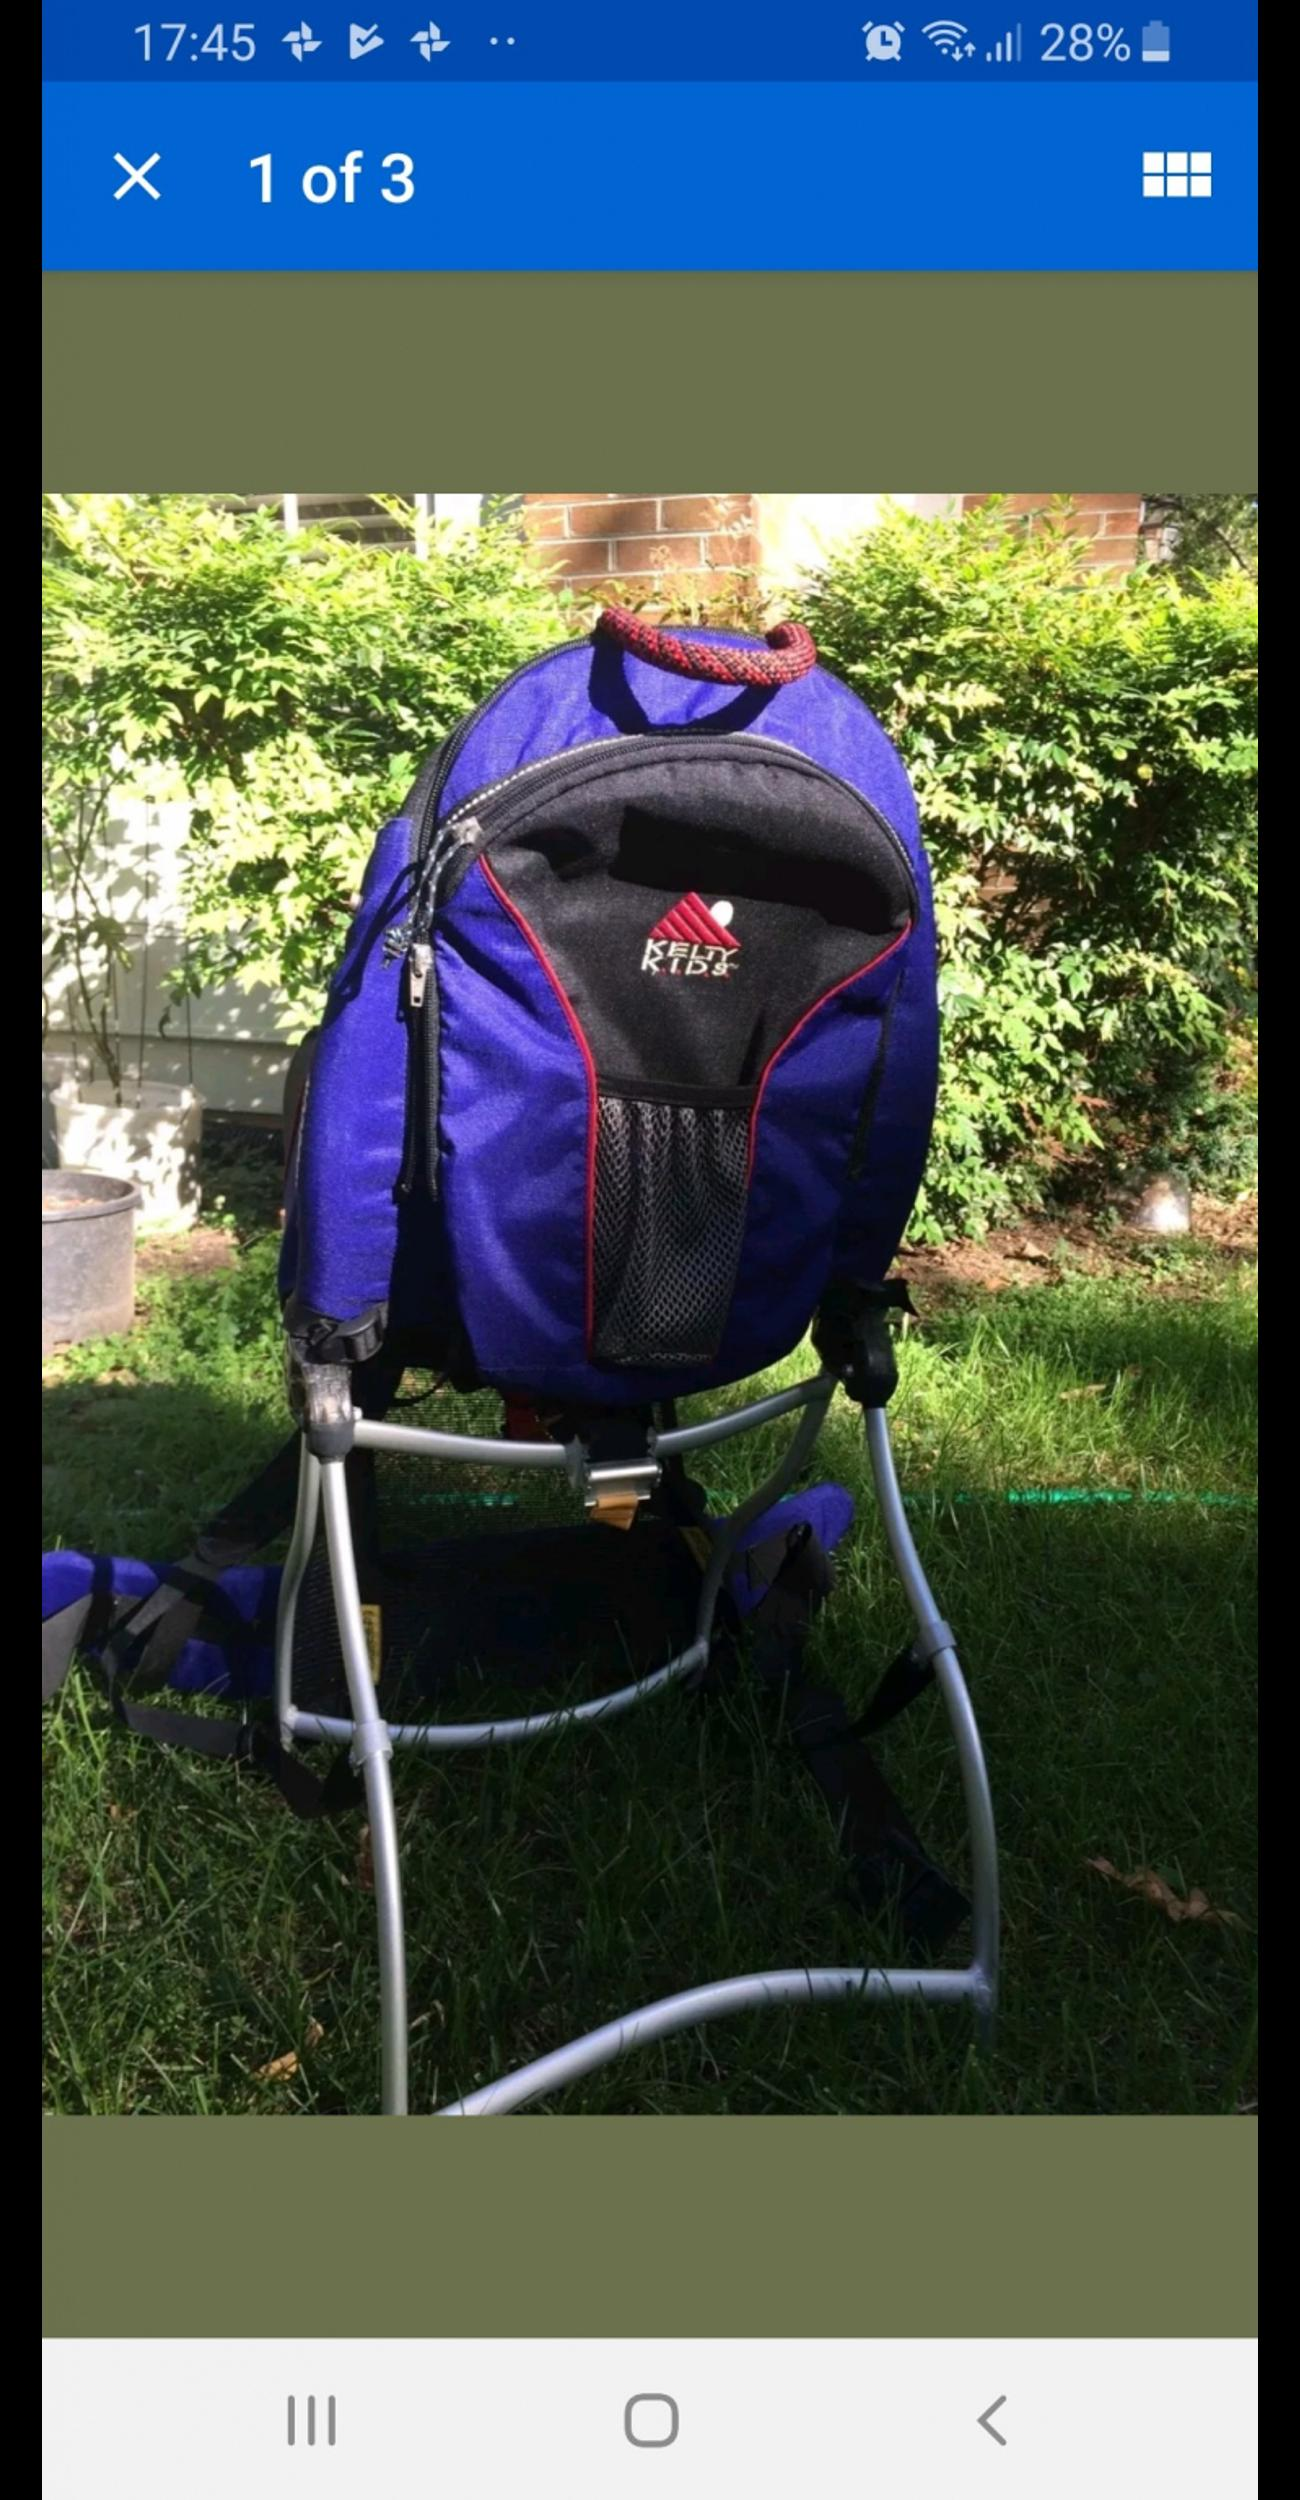 Kelty Kids Carrier In B64 Sandwell For 20 00 For Sale Shpock